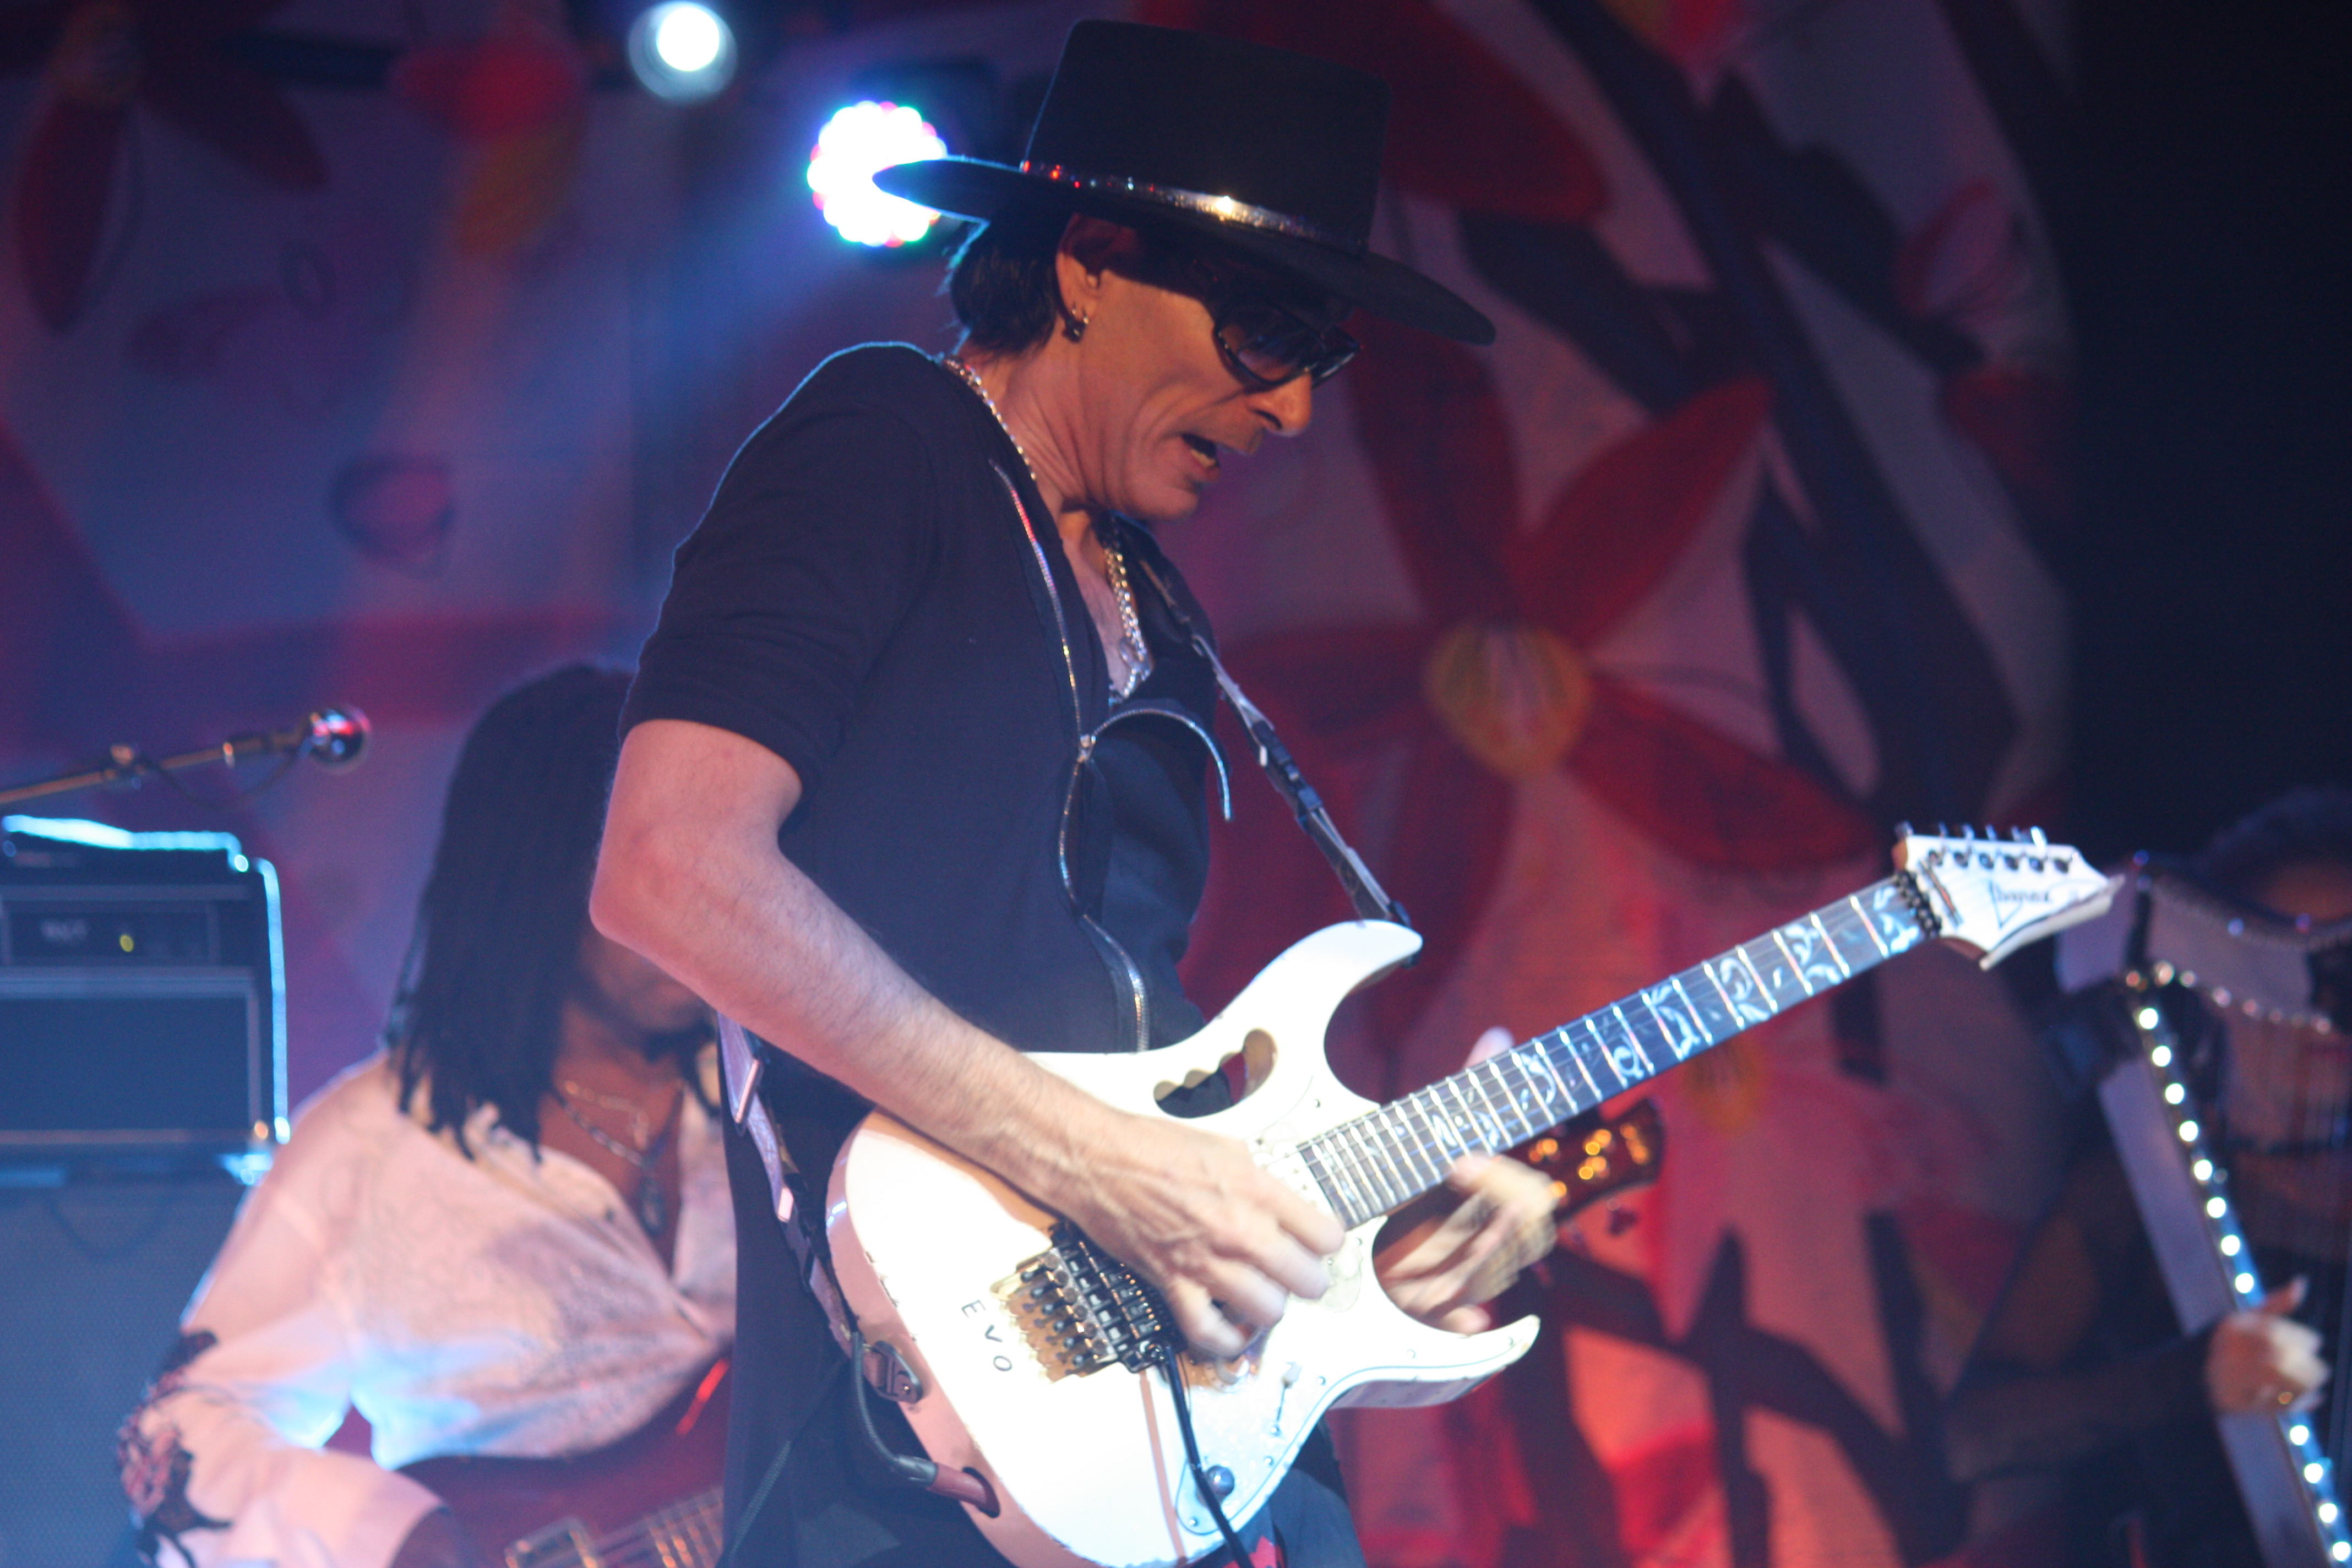 Steve vai live show review manta ray pictures vai1 fandeluxe Gallery